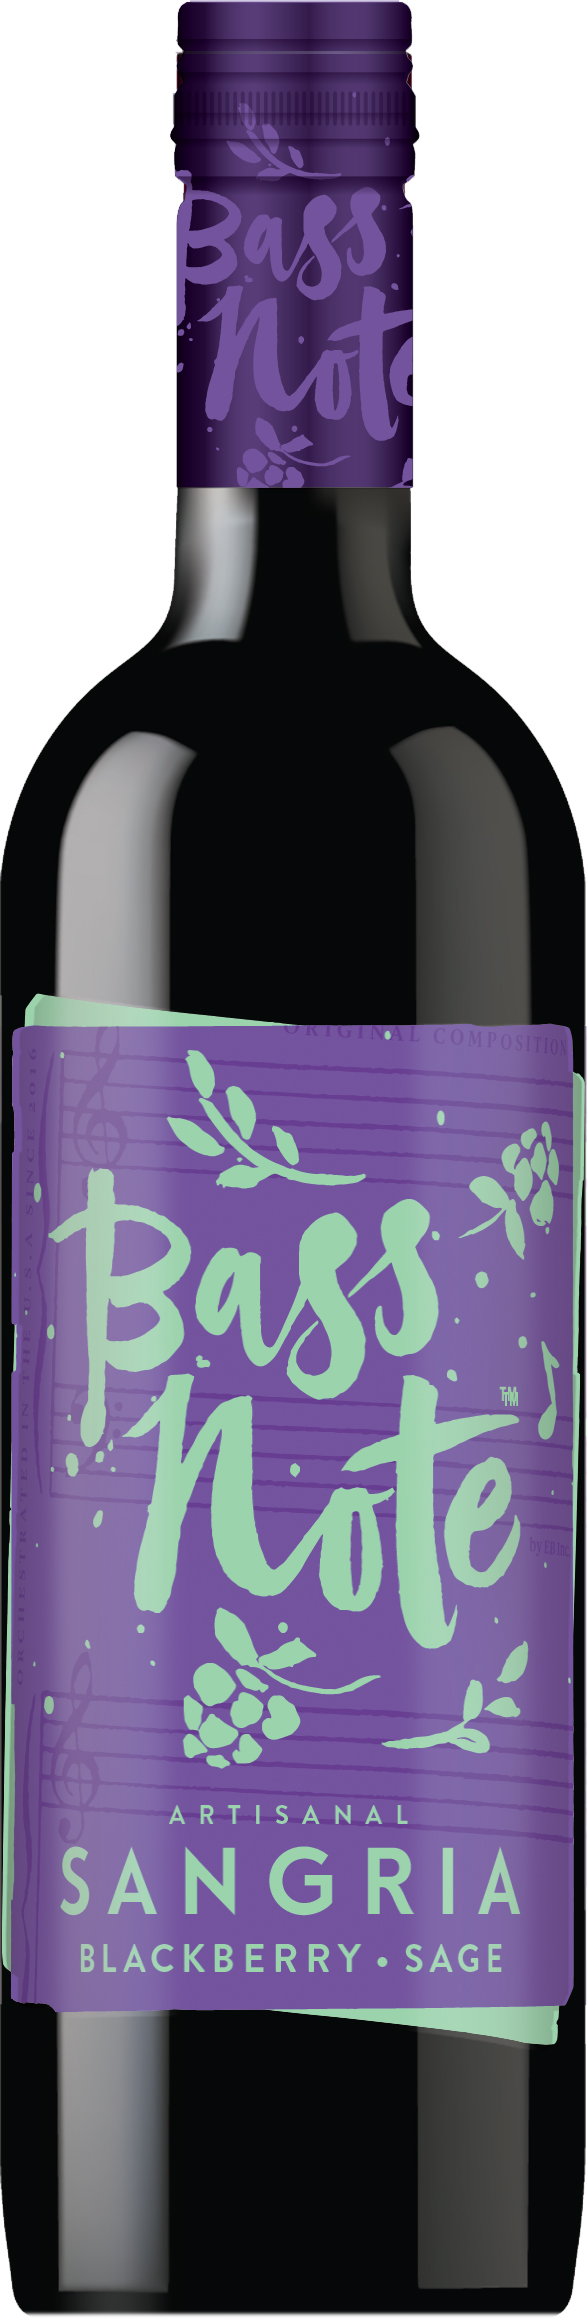 Bass Note Sangria - Blackberry Sage 750ml